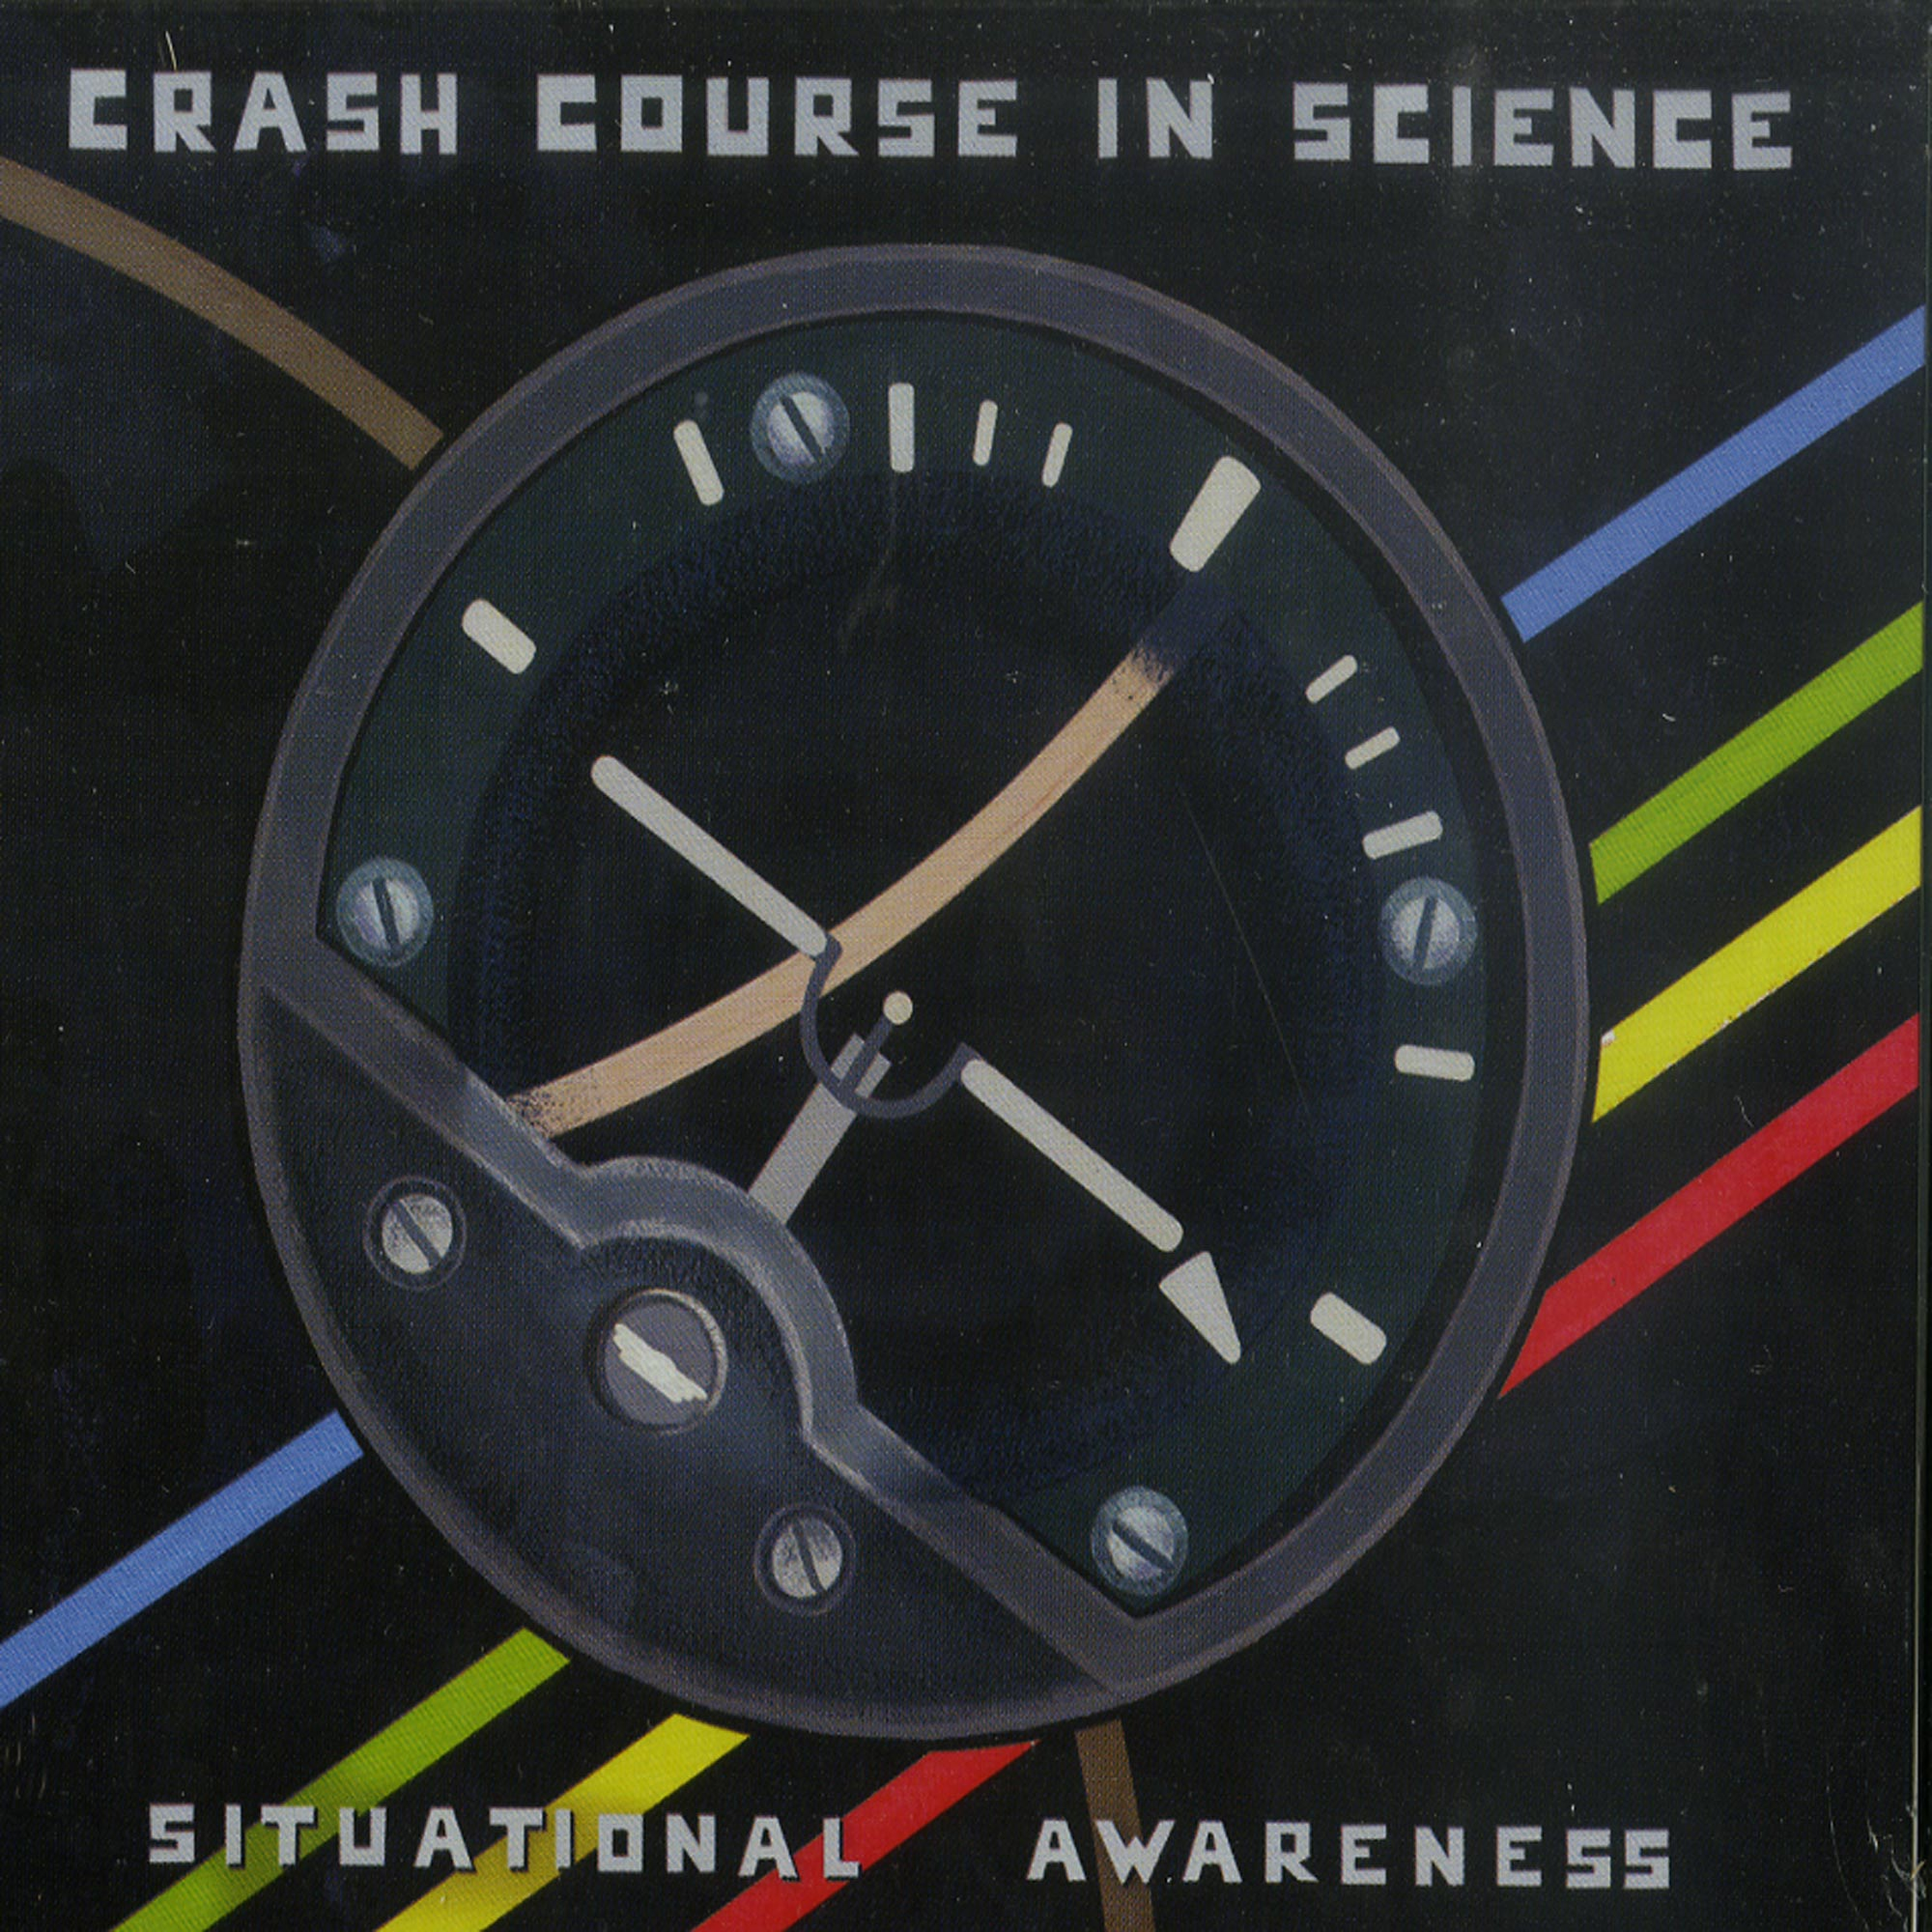 Crash Course In Science - SITUATIONAL AWARENESS